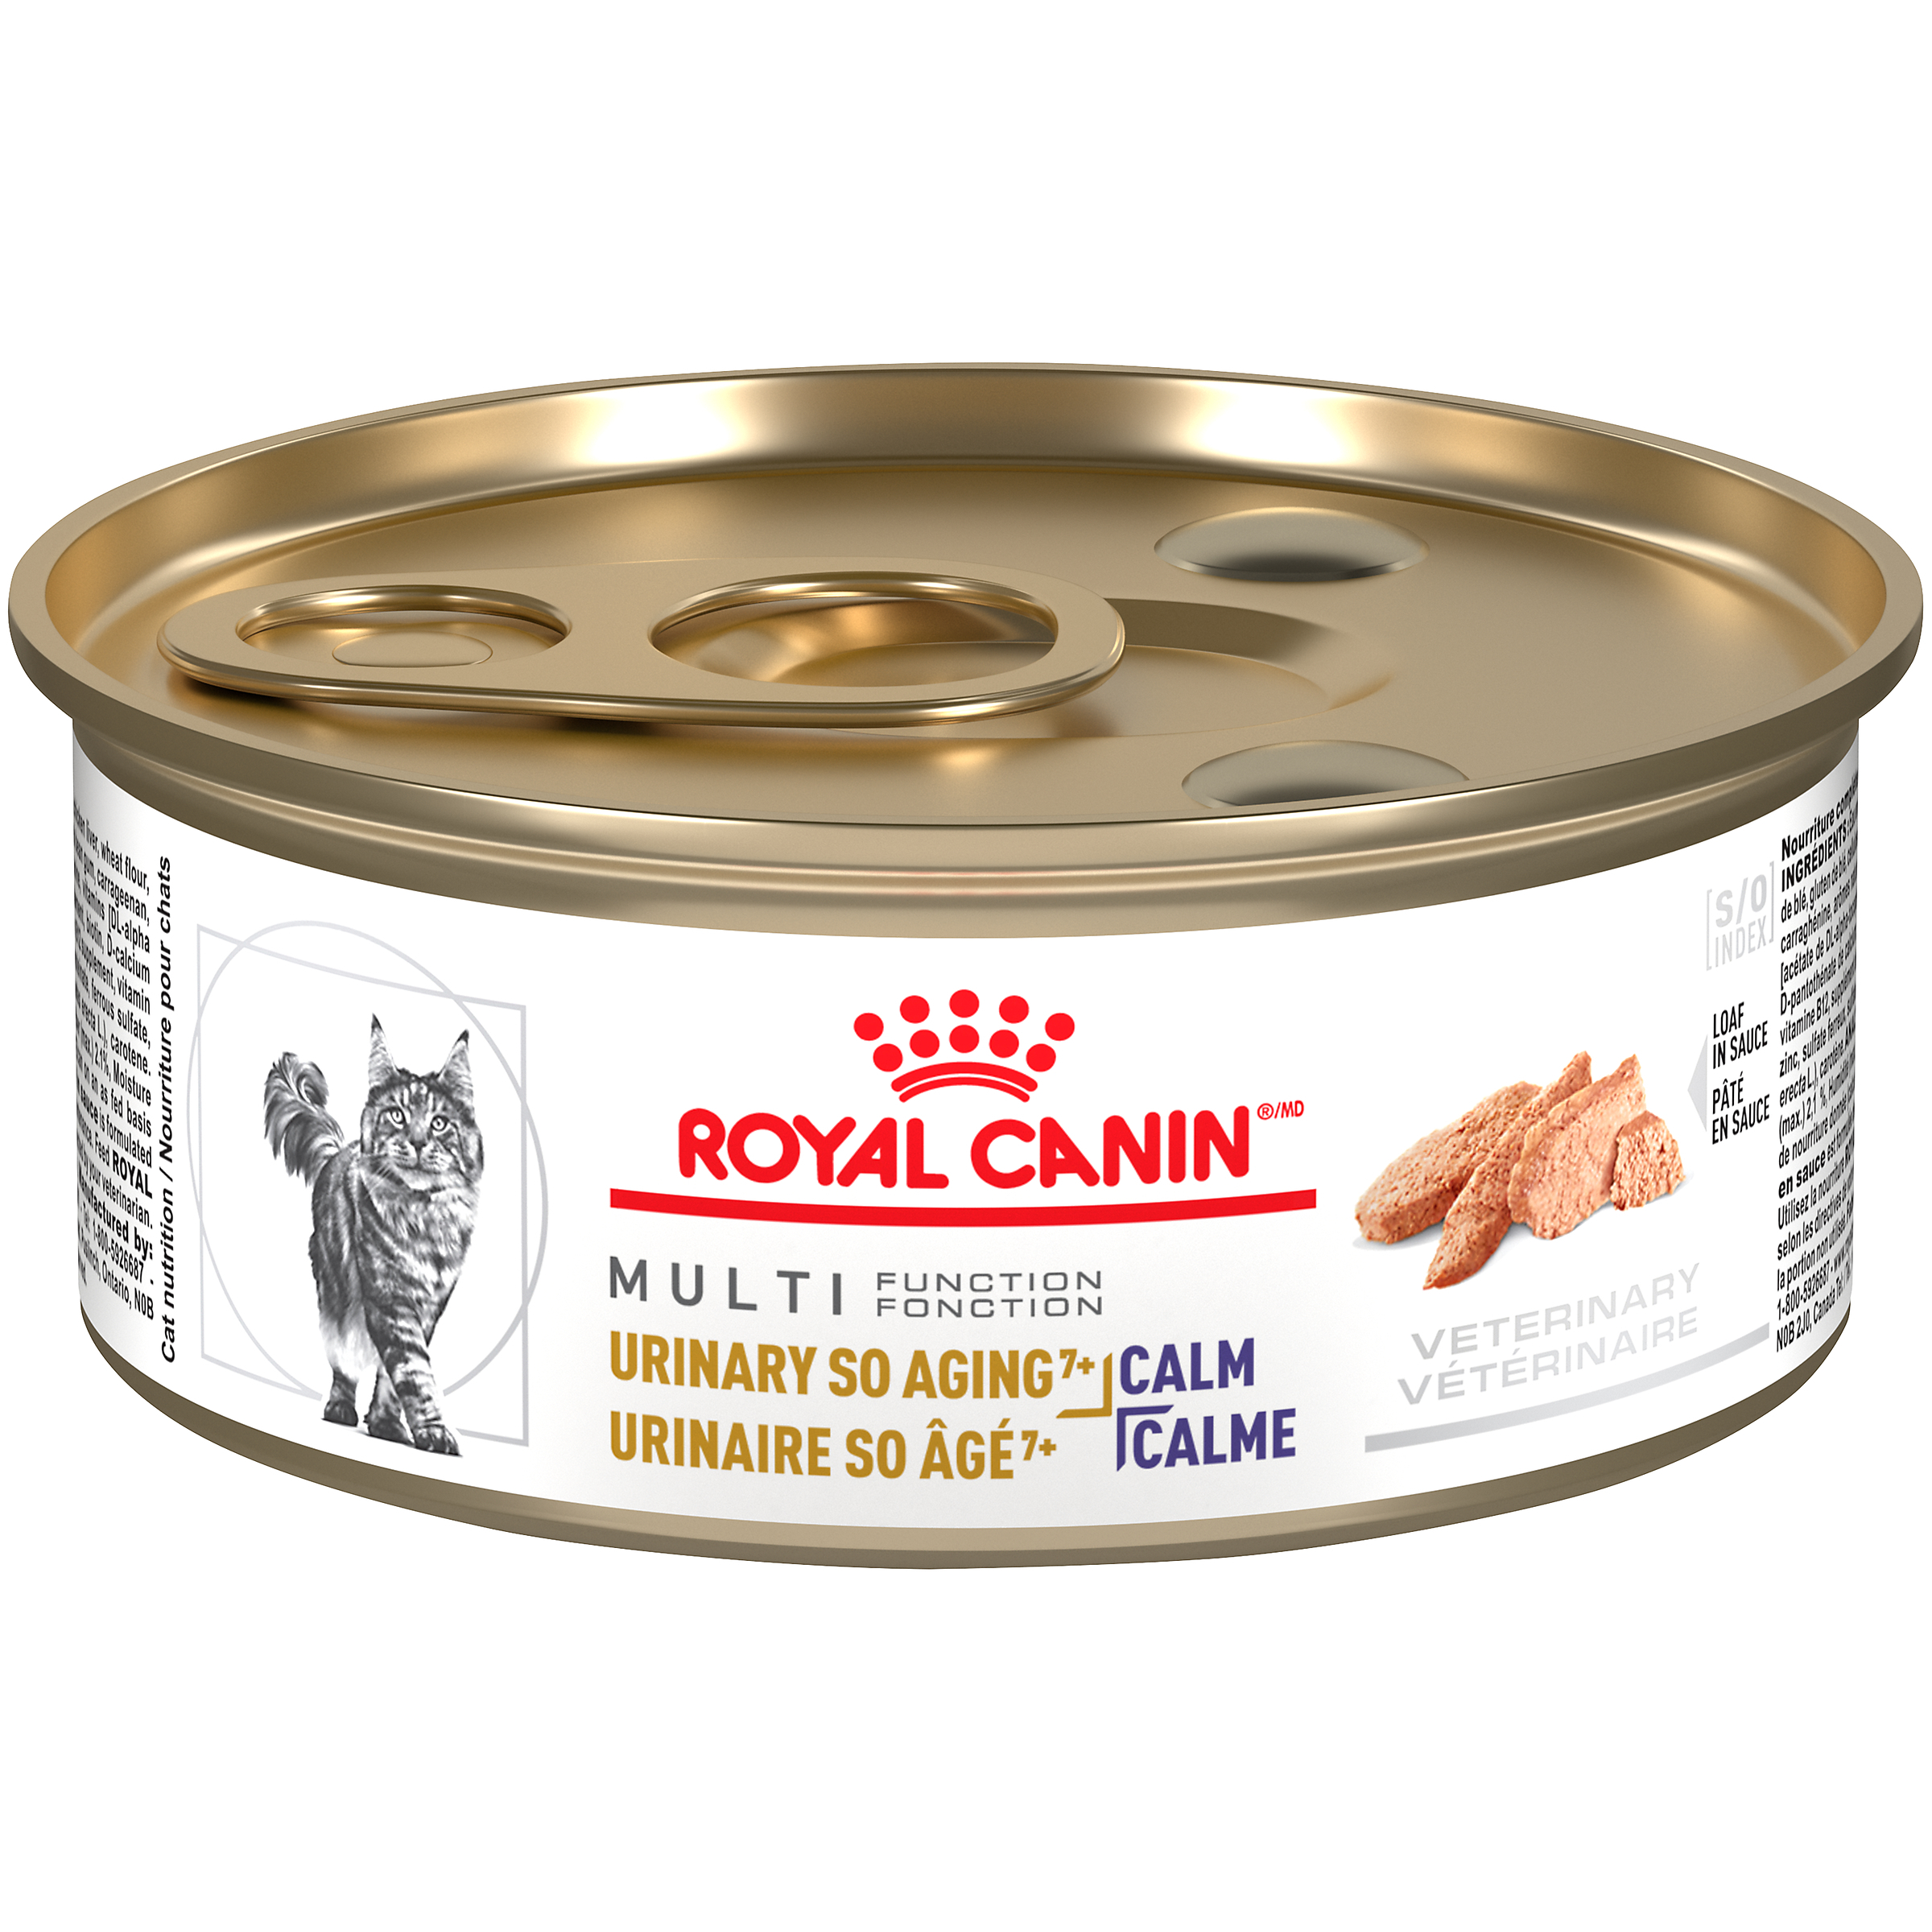 Royal Canin Veterinary Diet Feline Urinary SO Aging7+ + Calm Canned Cat Food